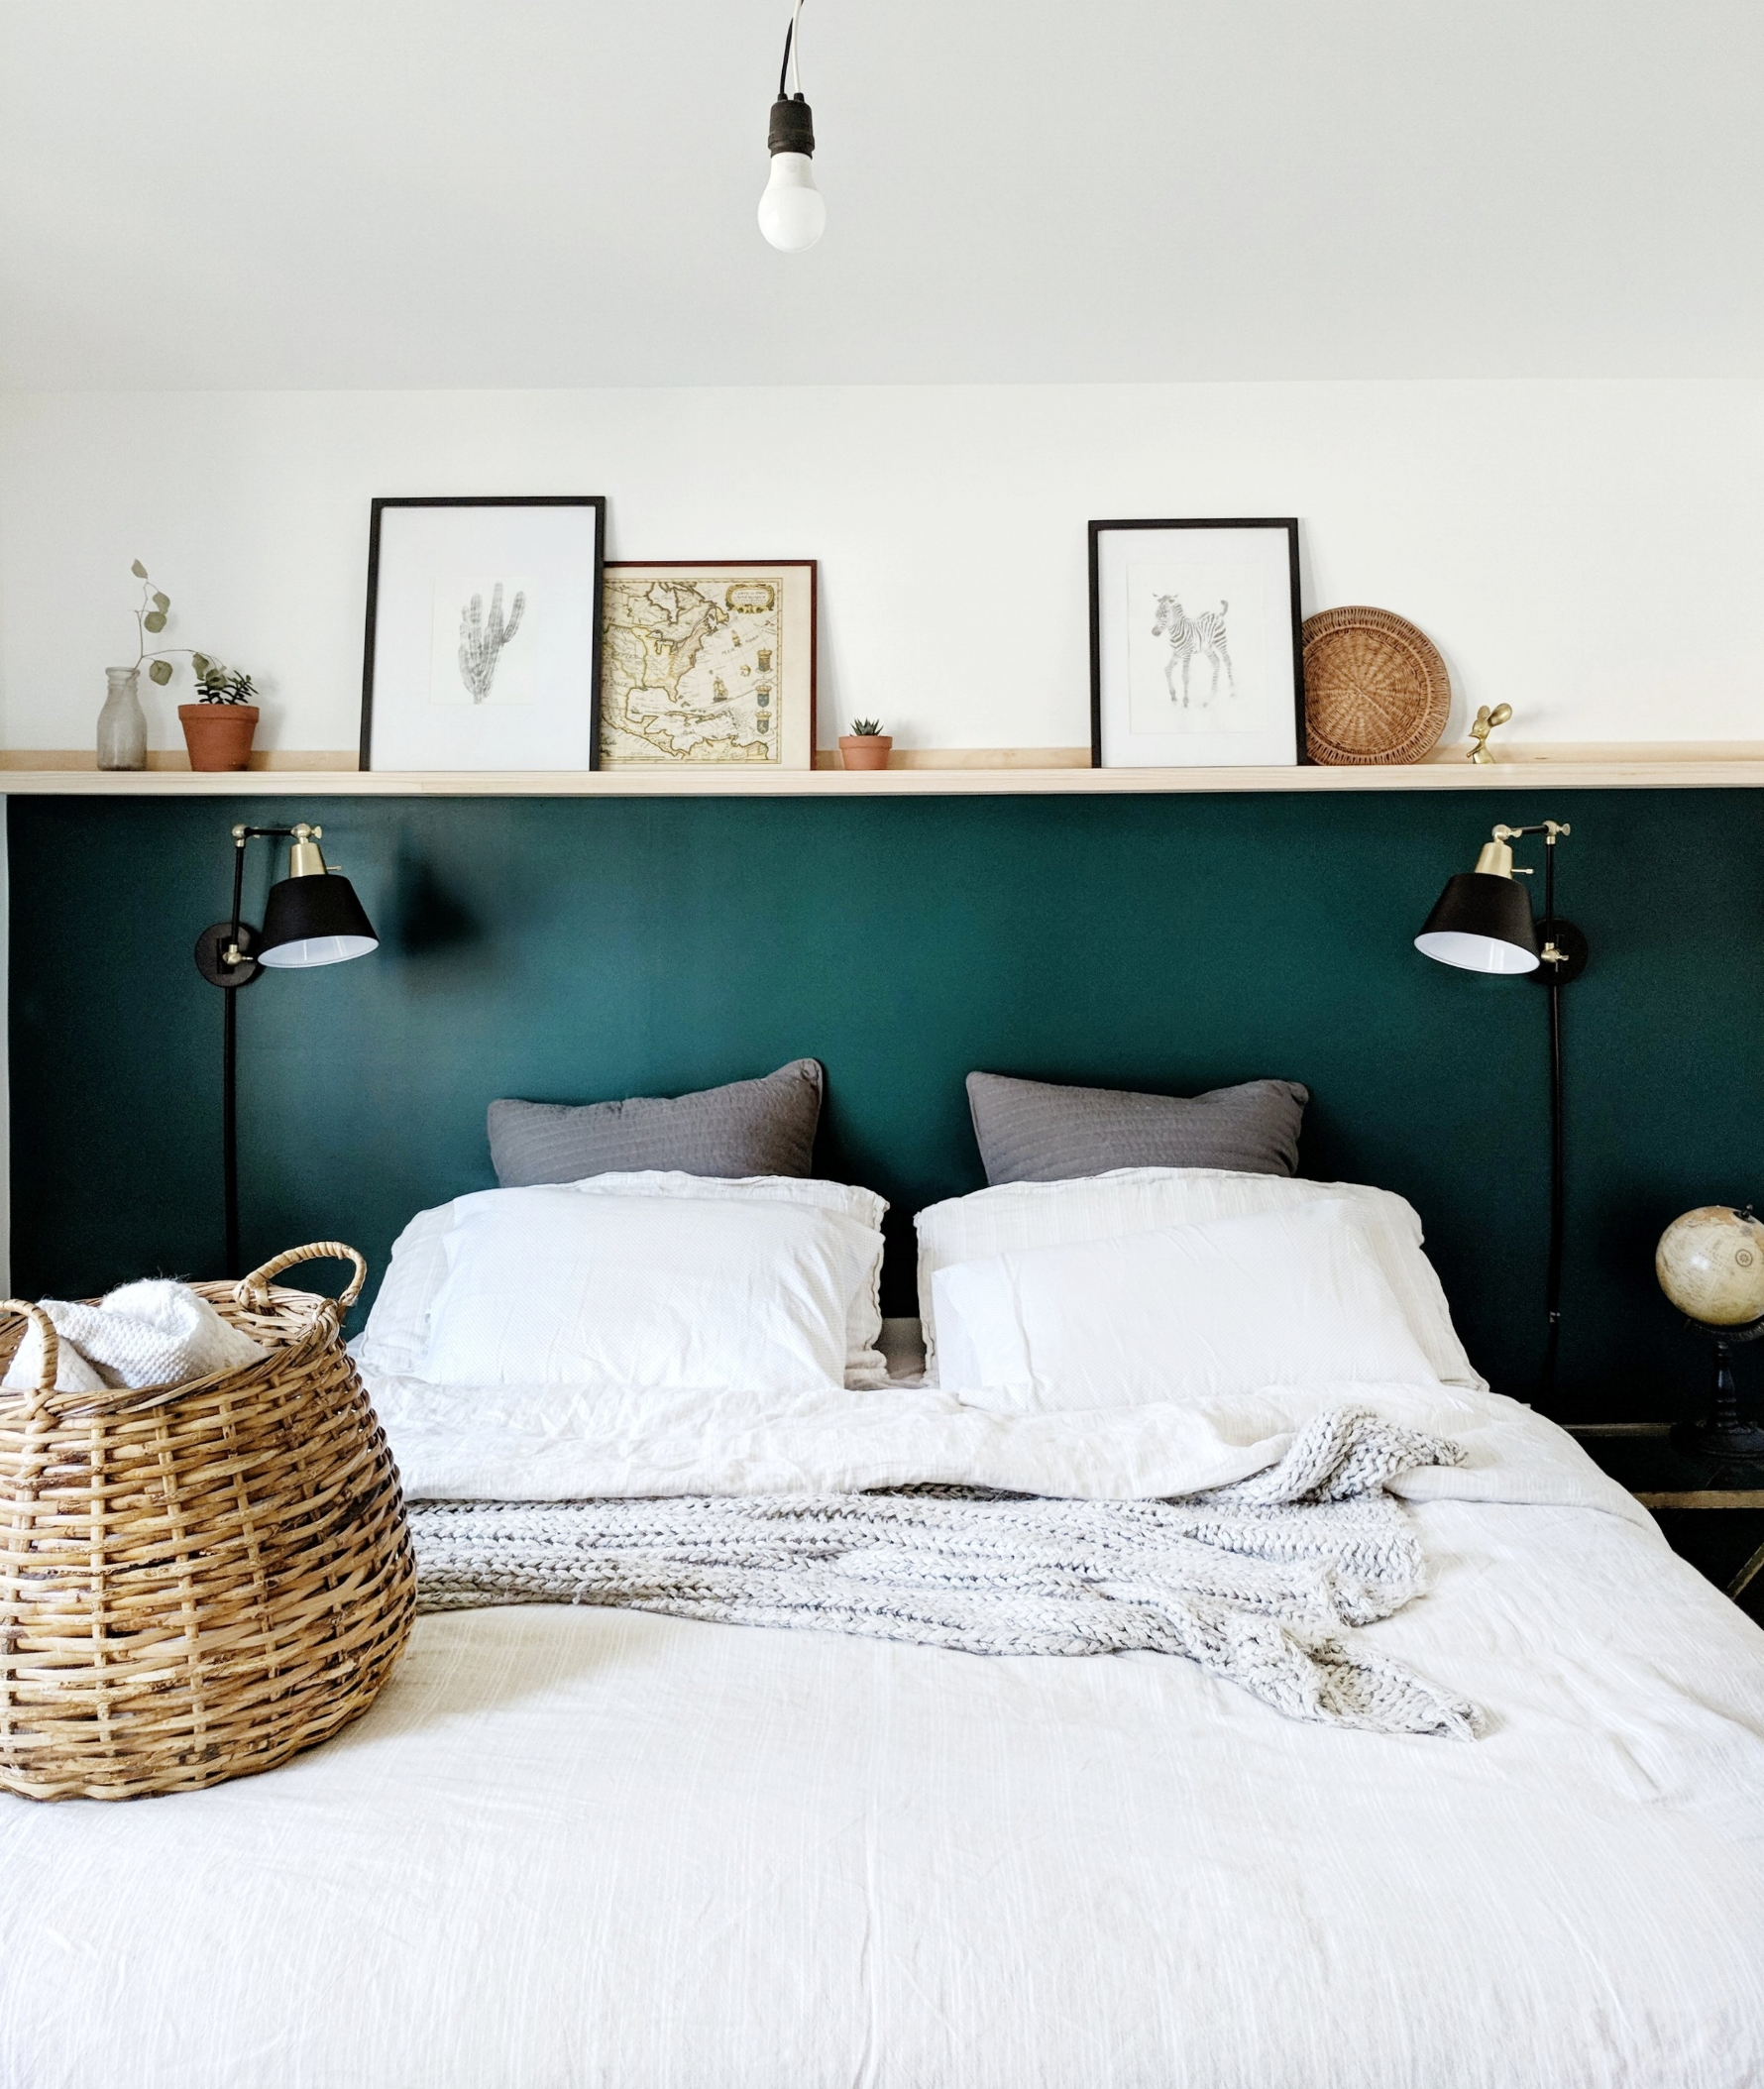 Master Bedroom Wall To Picture Ledge K I R S T E N D A